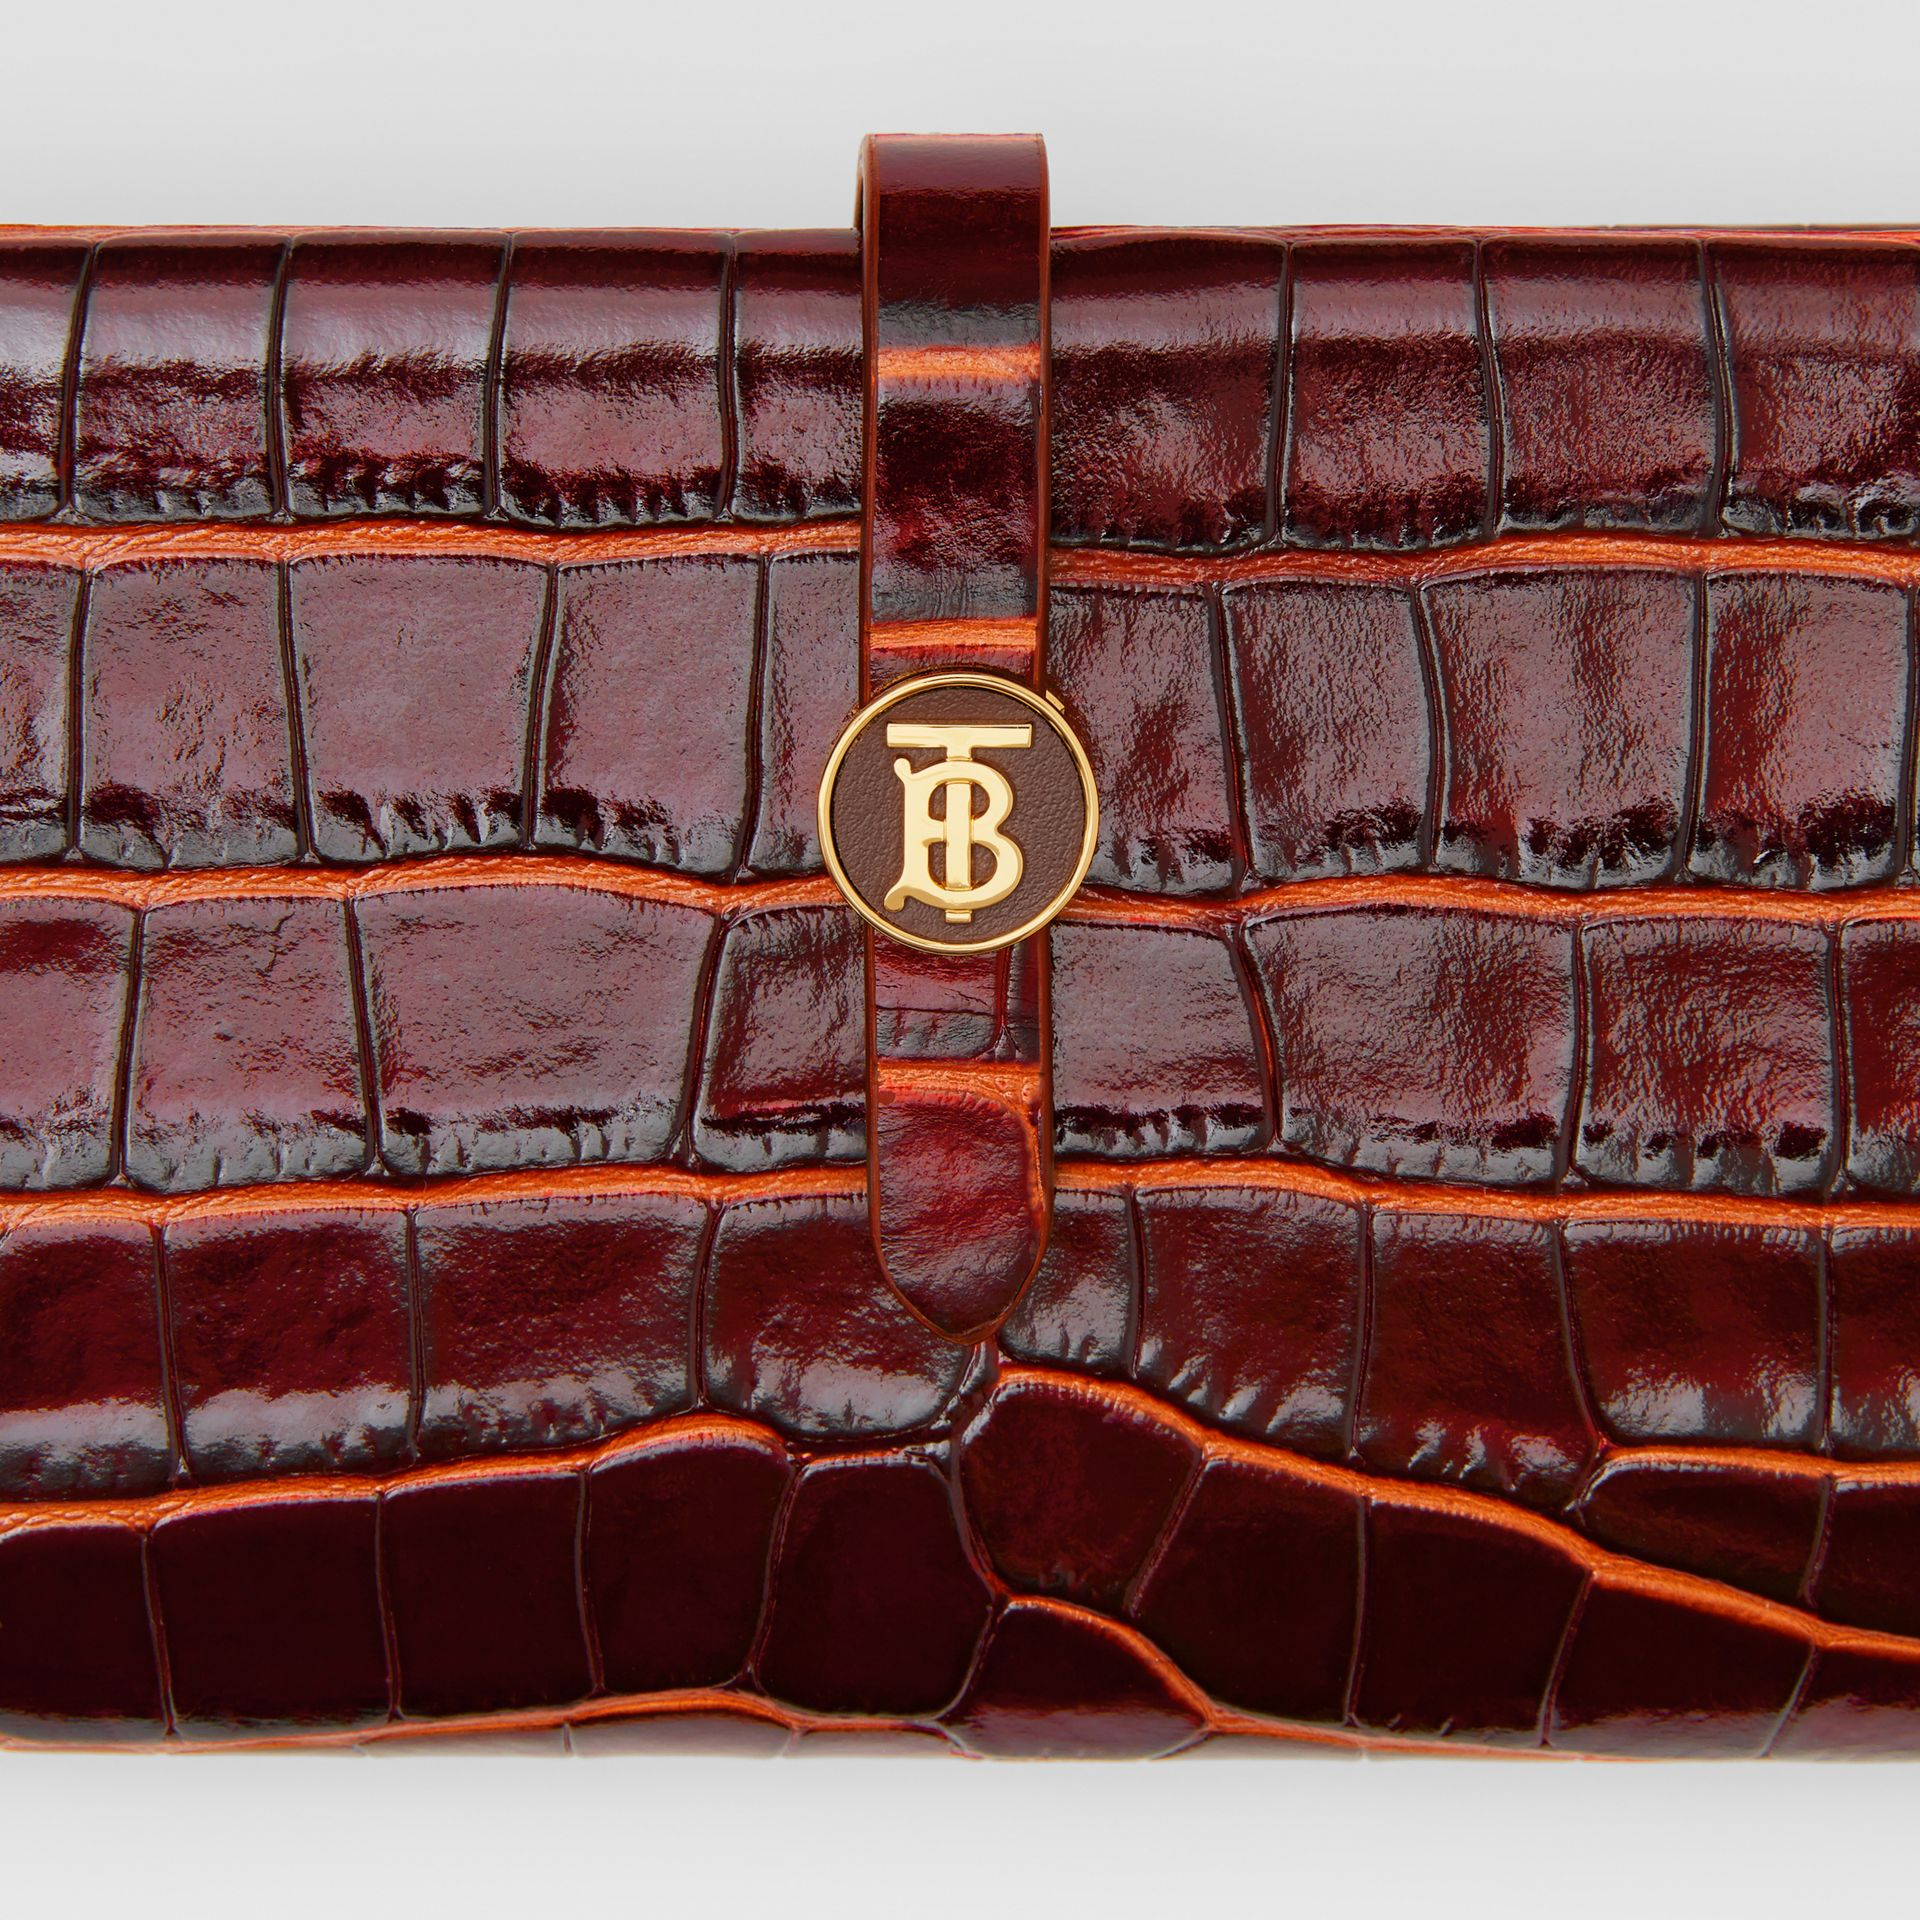 Monogram Motif Embossed Leather Folding Wallet in Tan - Women | Burberry - gallery image 1